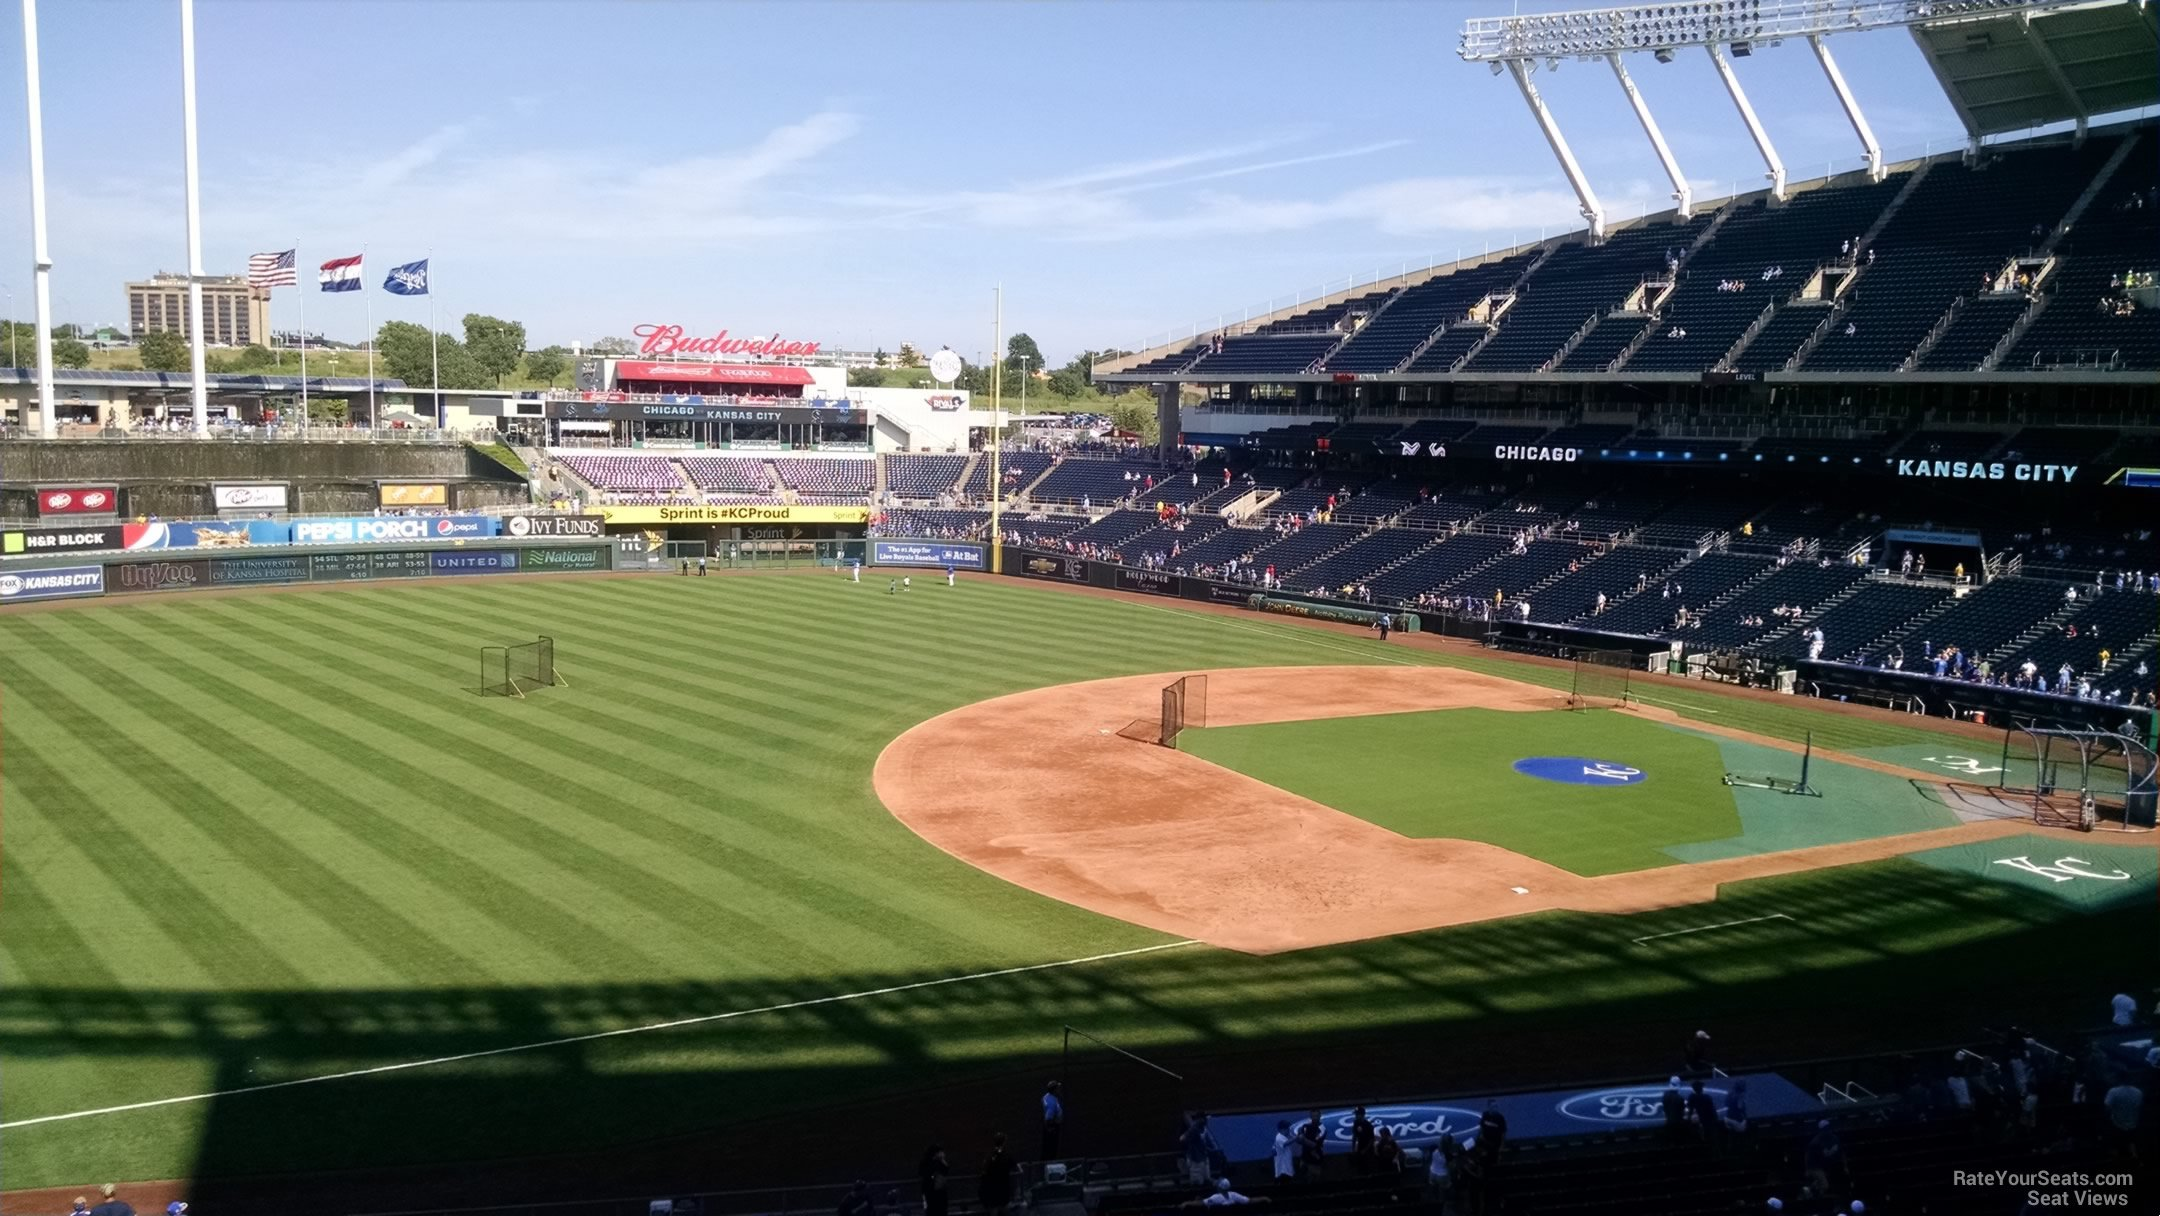 Seat View for Kauffman Stadium Craft and Draft